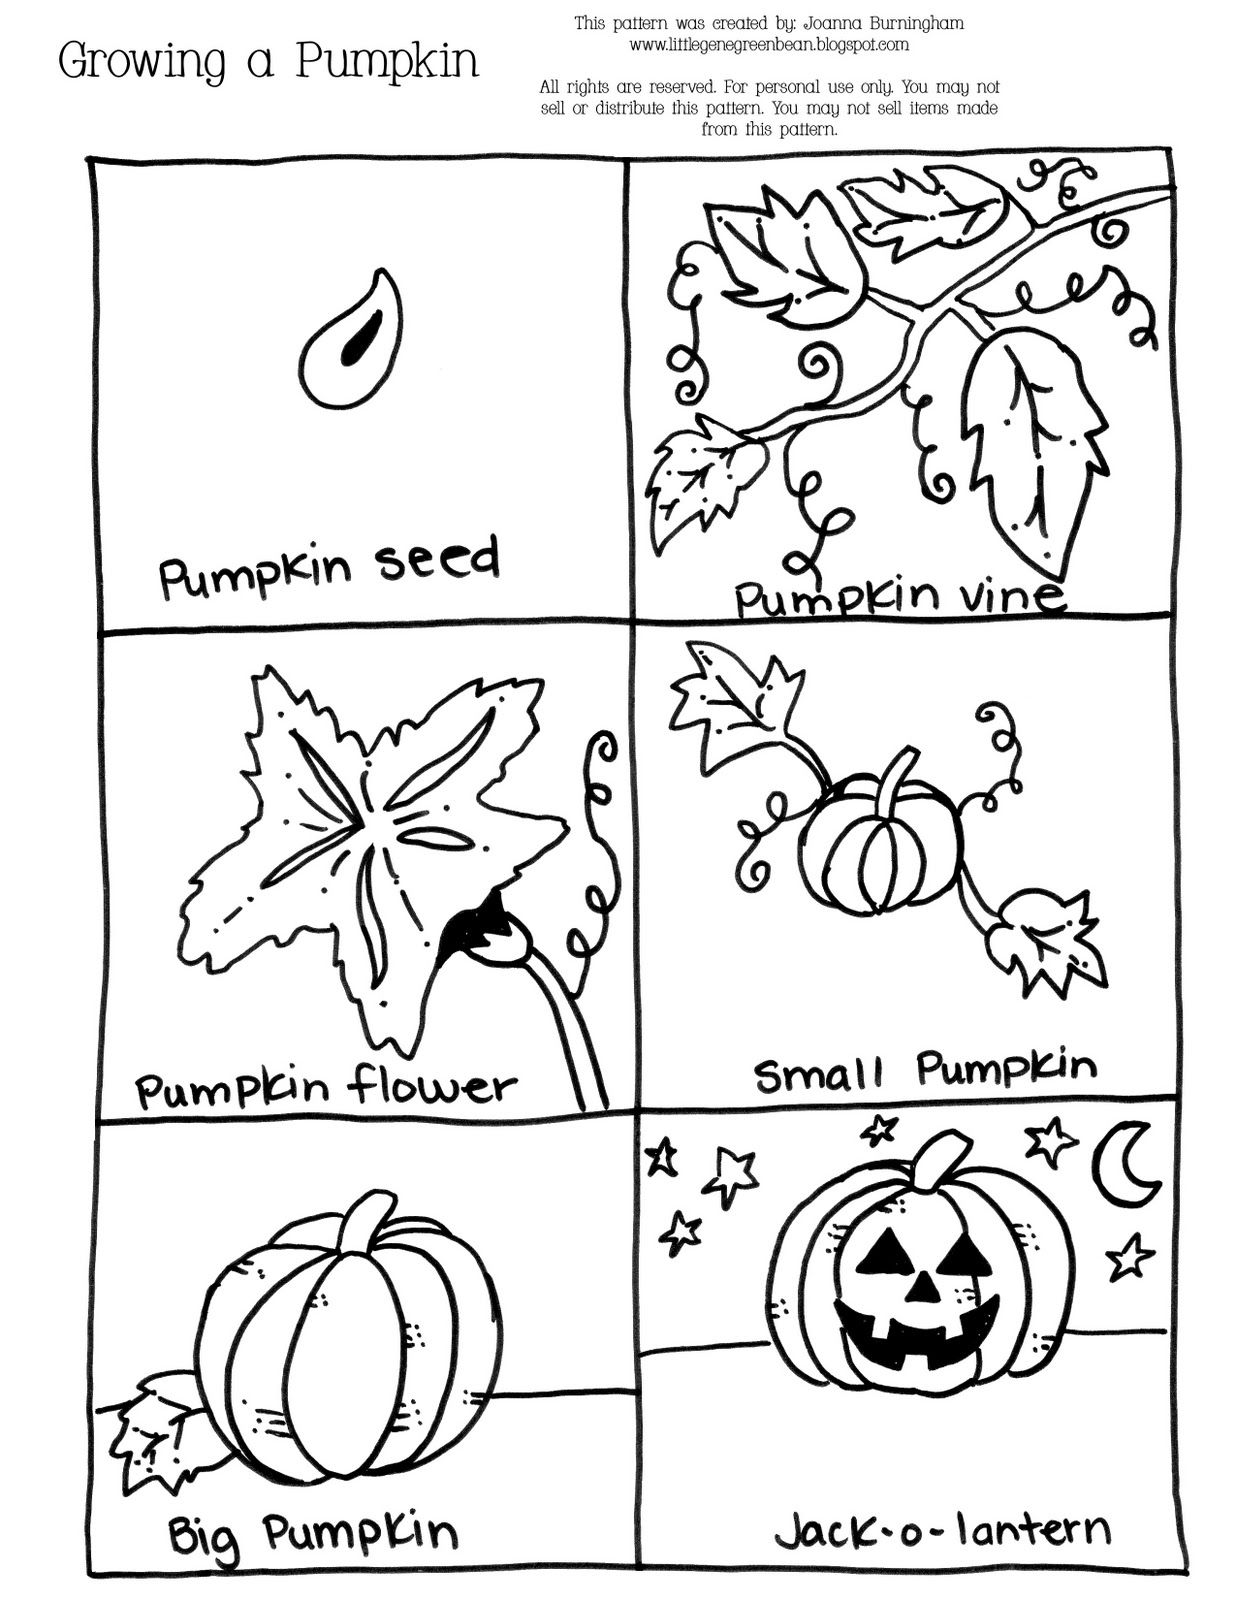 Pumpkin Growth Sequencing Sheet Halloween Repinned By